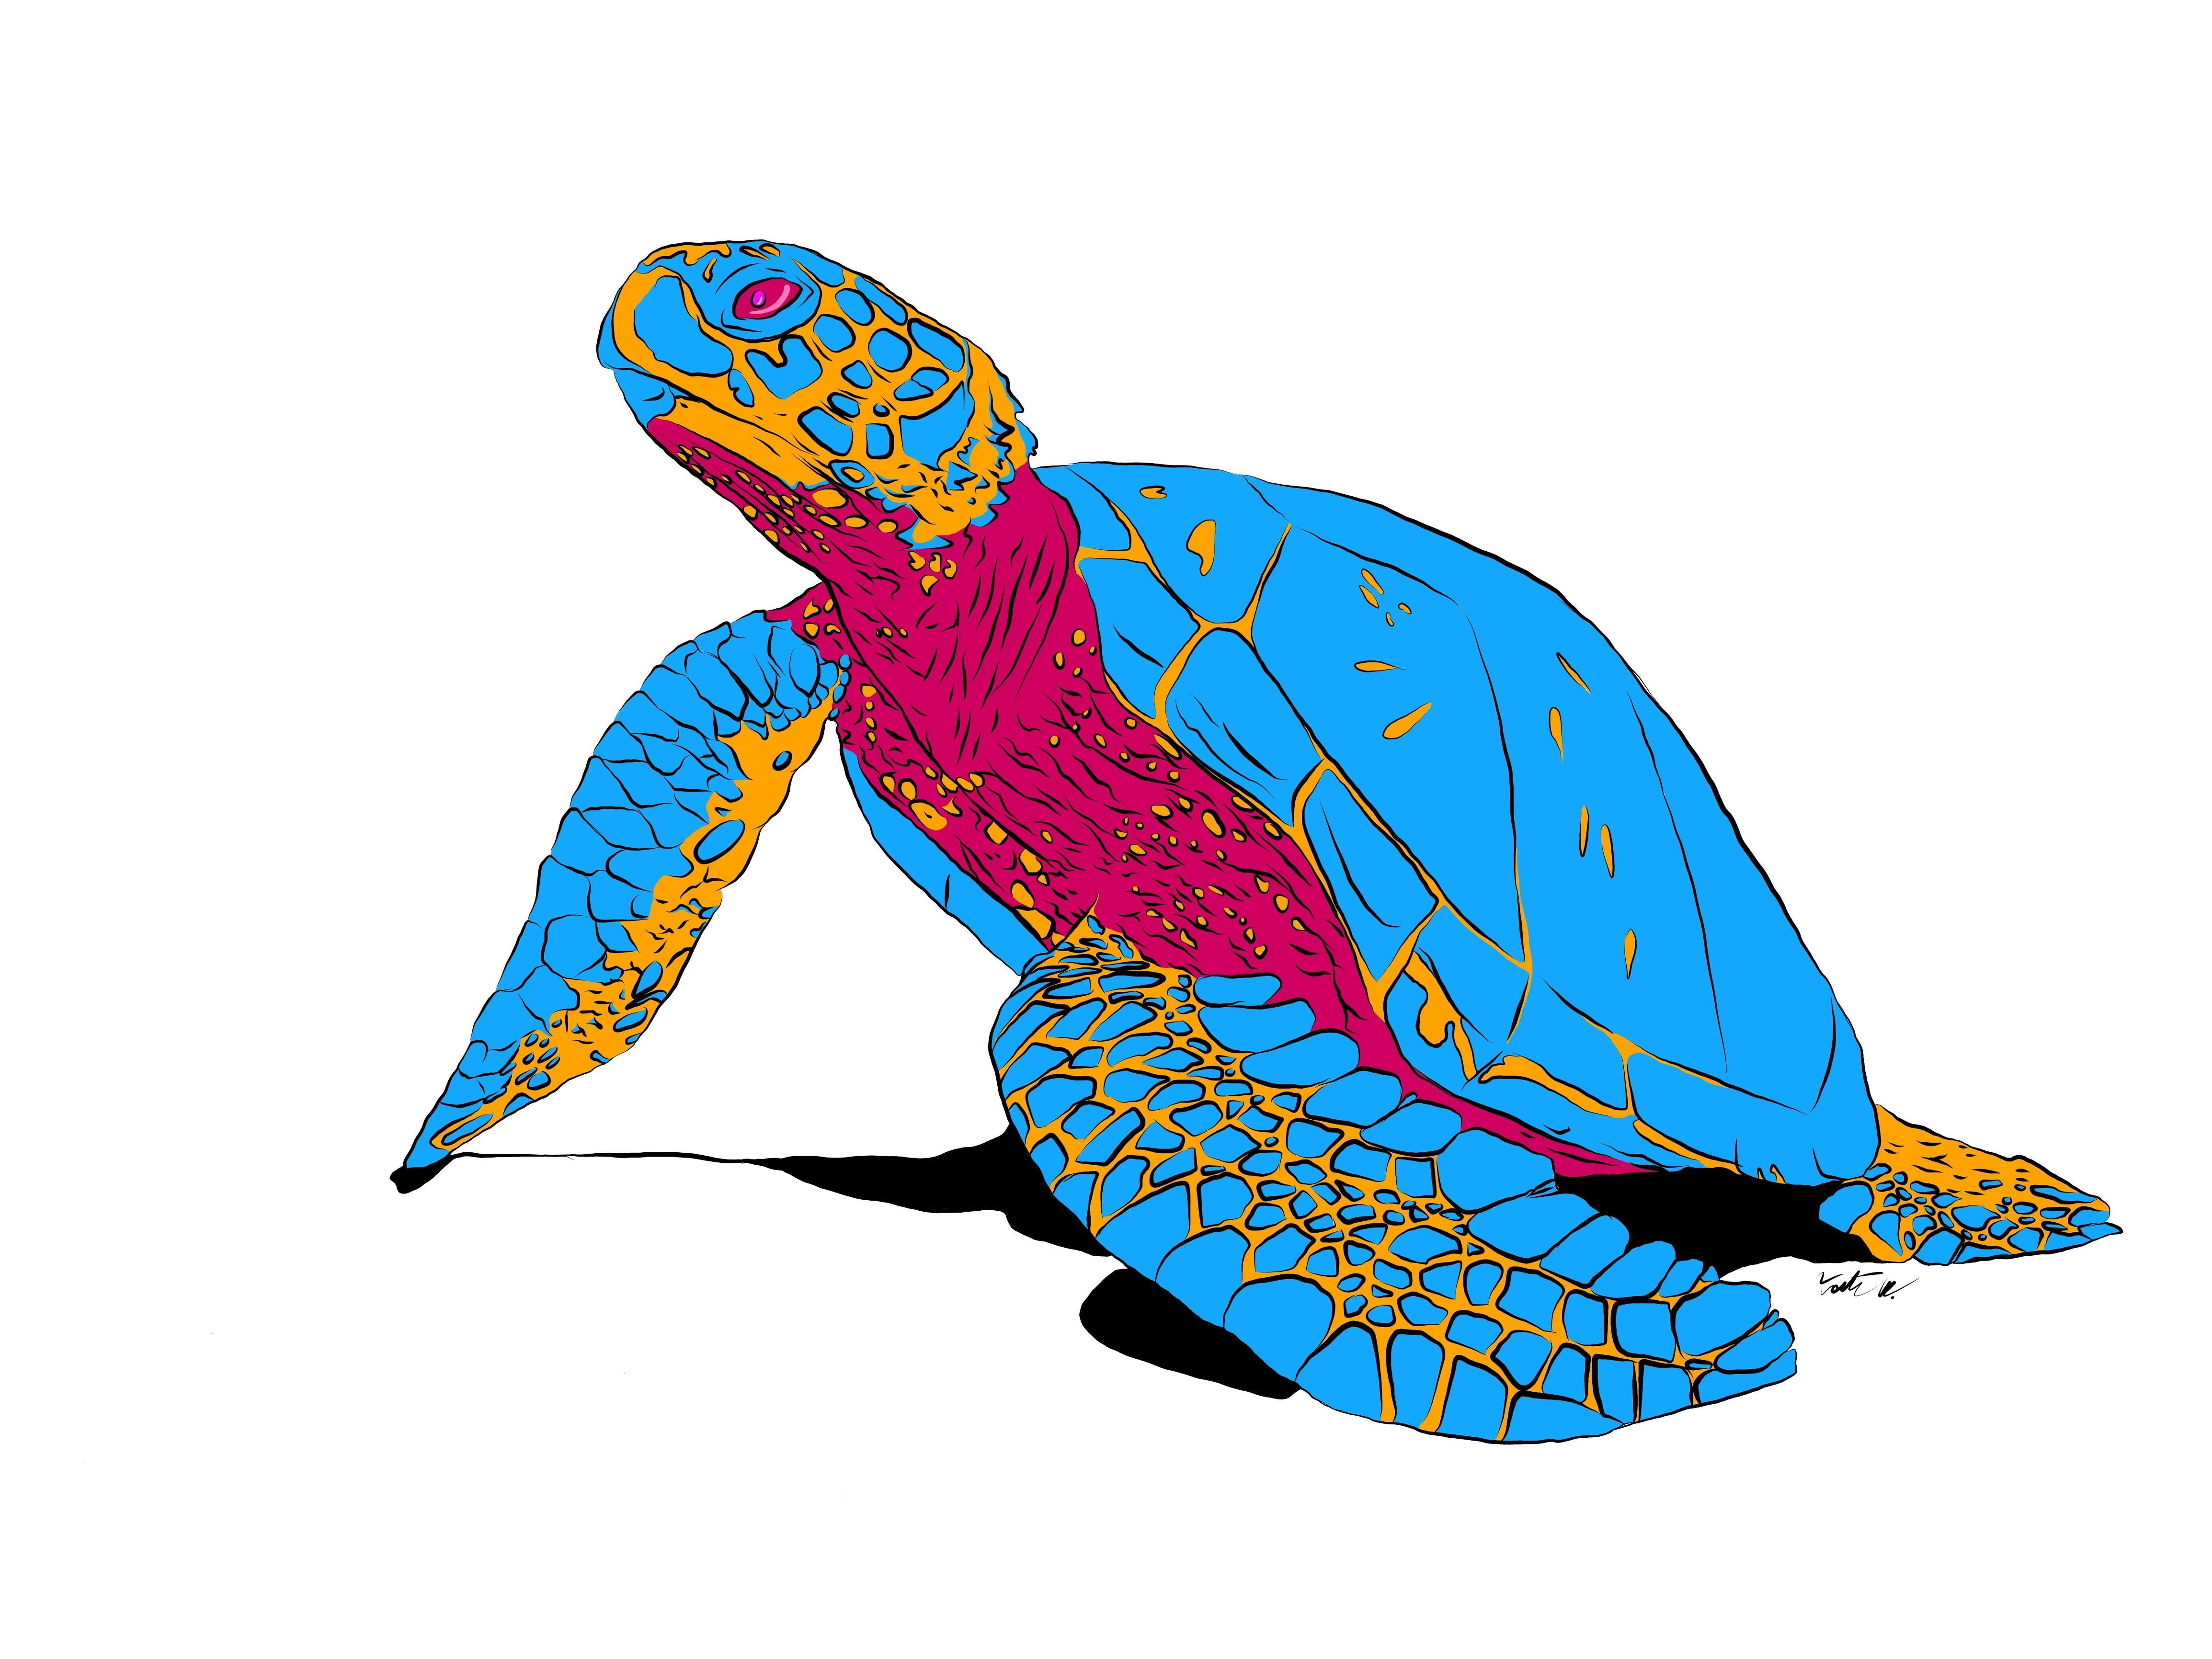 Art Trippy turtle digital 4618x3464 (With images) | Trippy ...